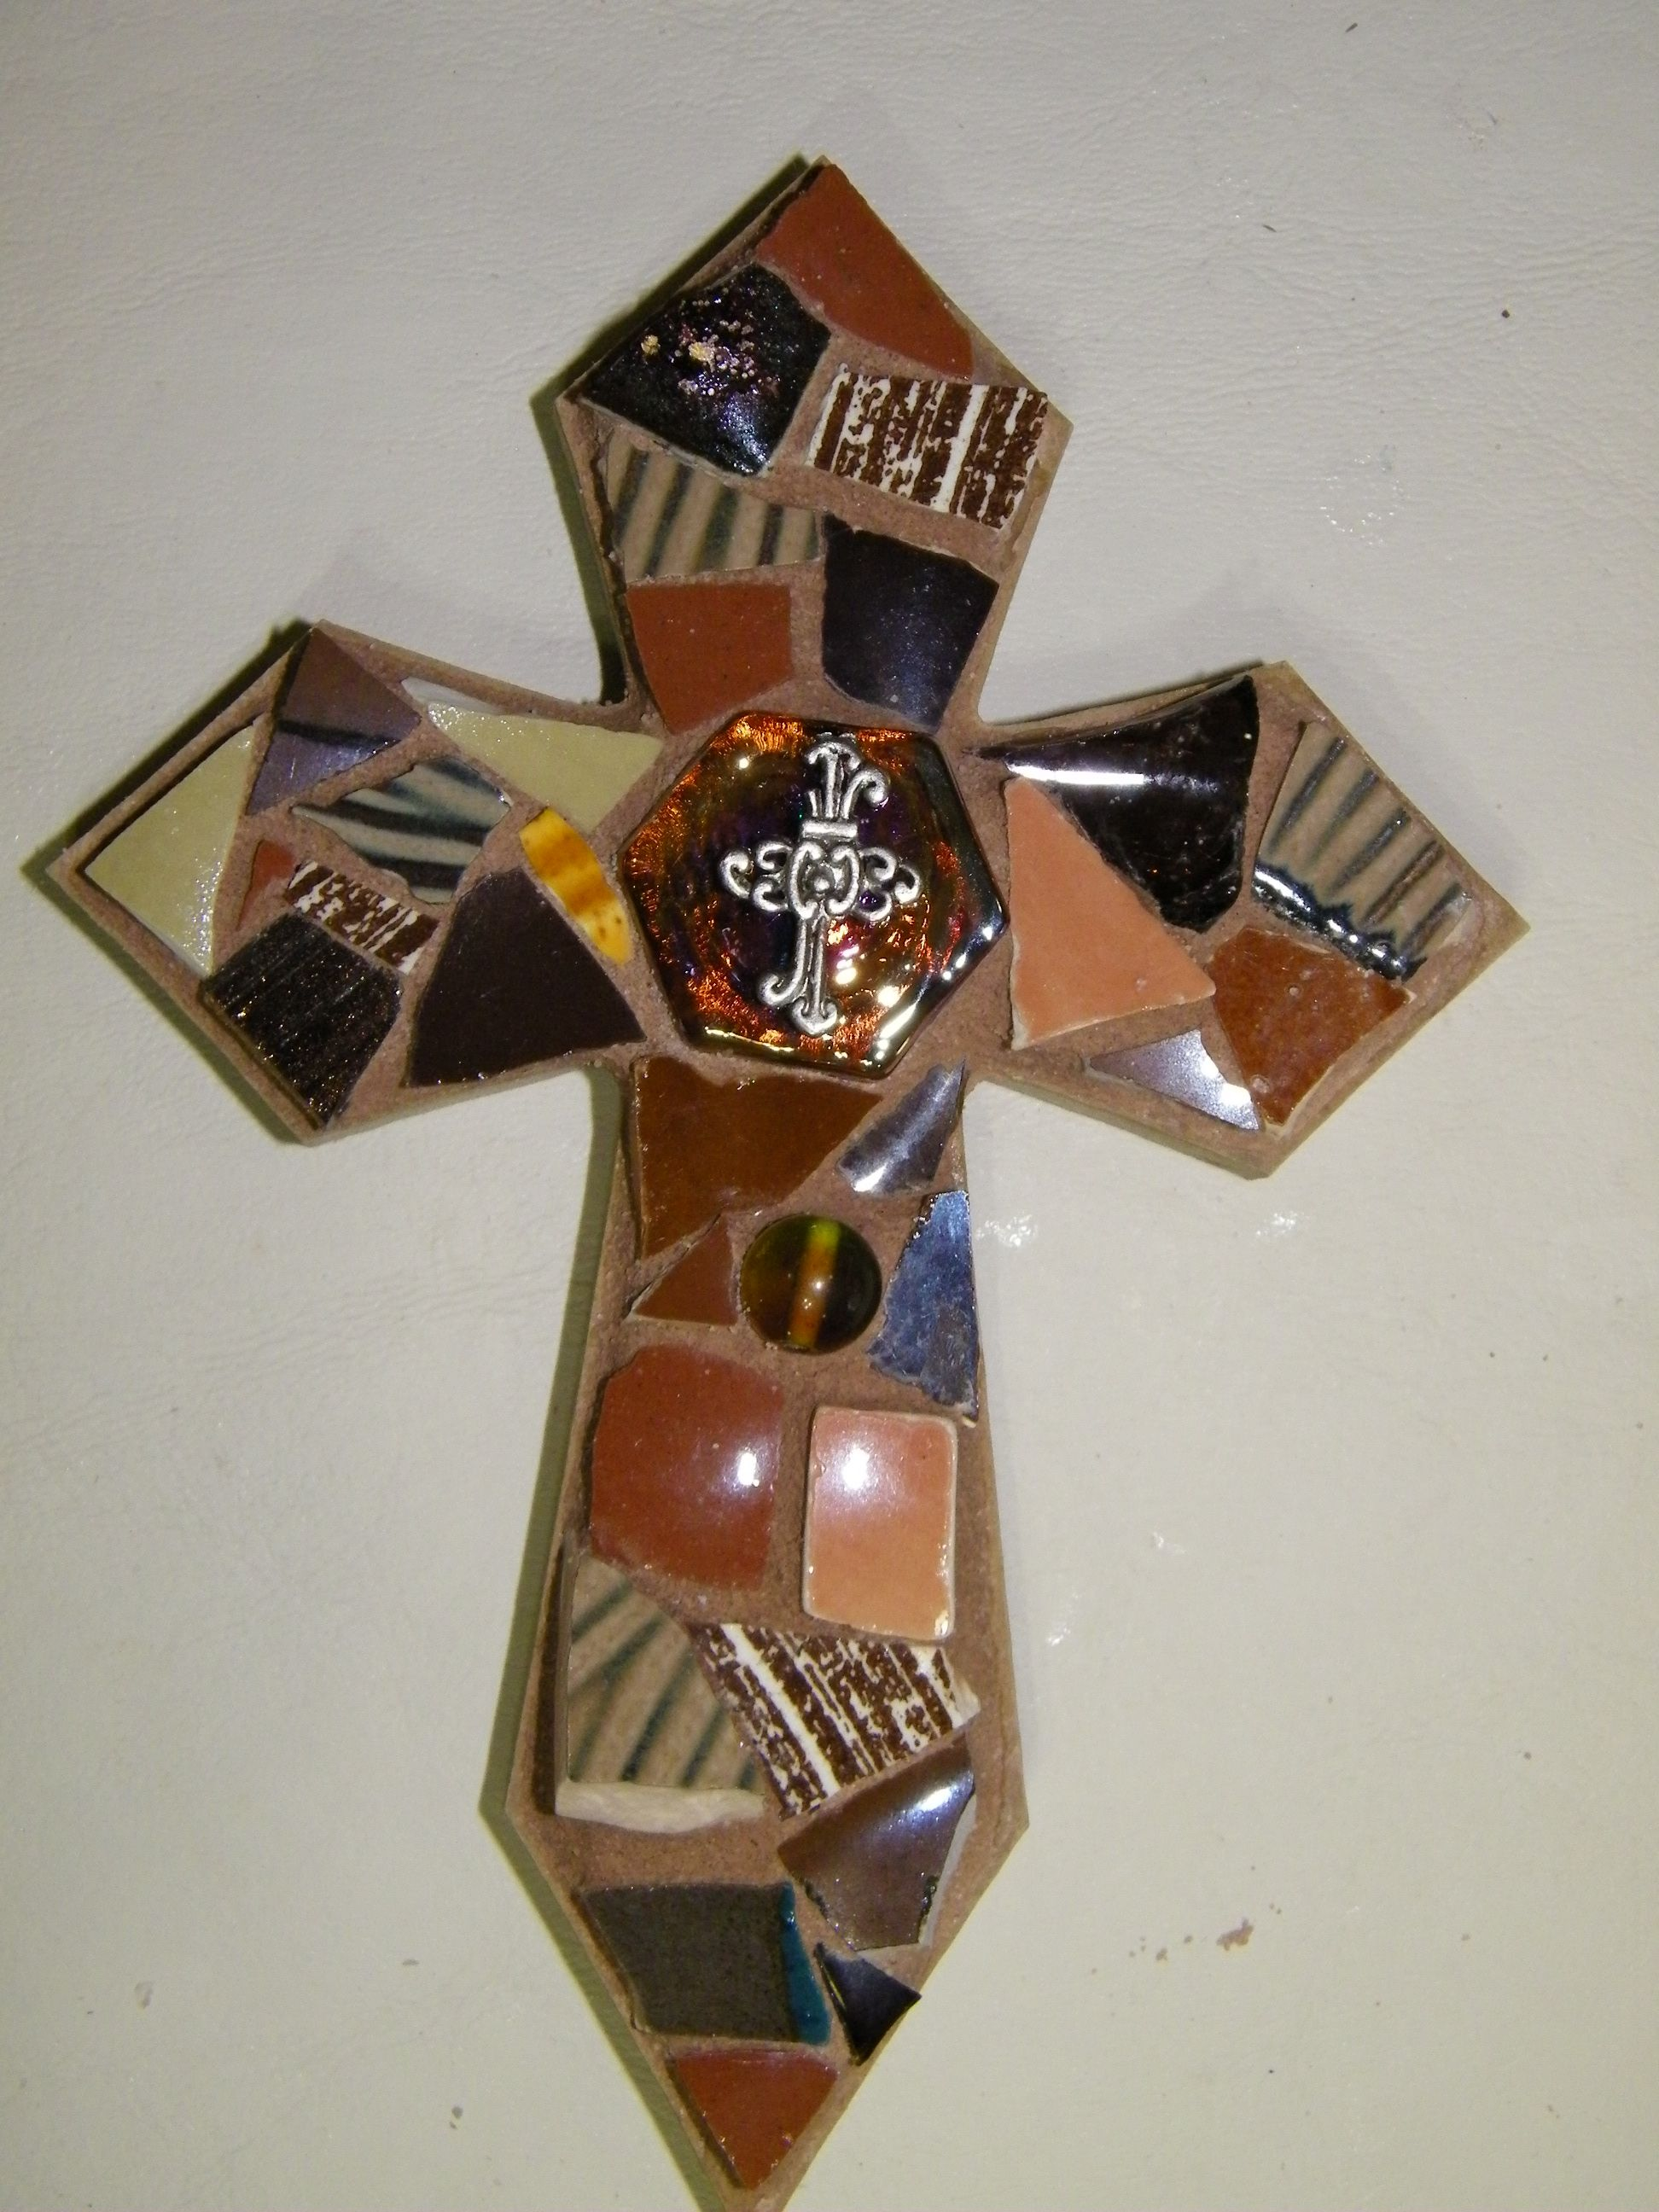 Mini brown cross by amy glass 415 facebook mini brown cross by amy glass 415 facebook buycottarizona Image collections